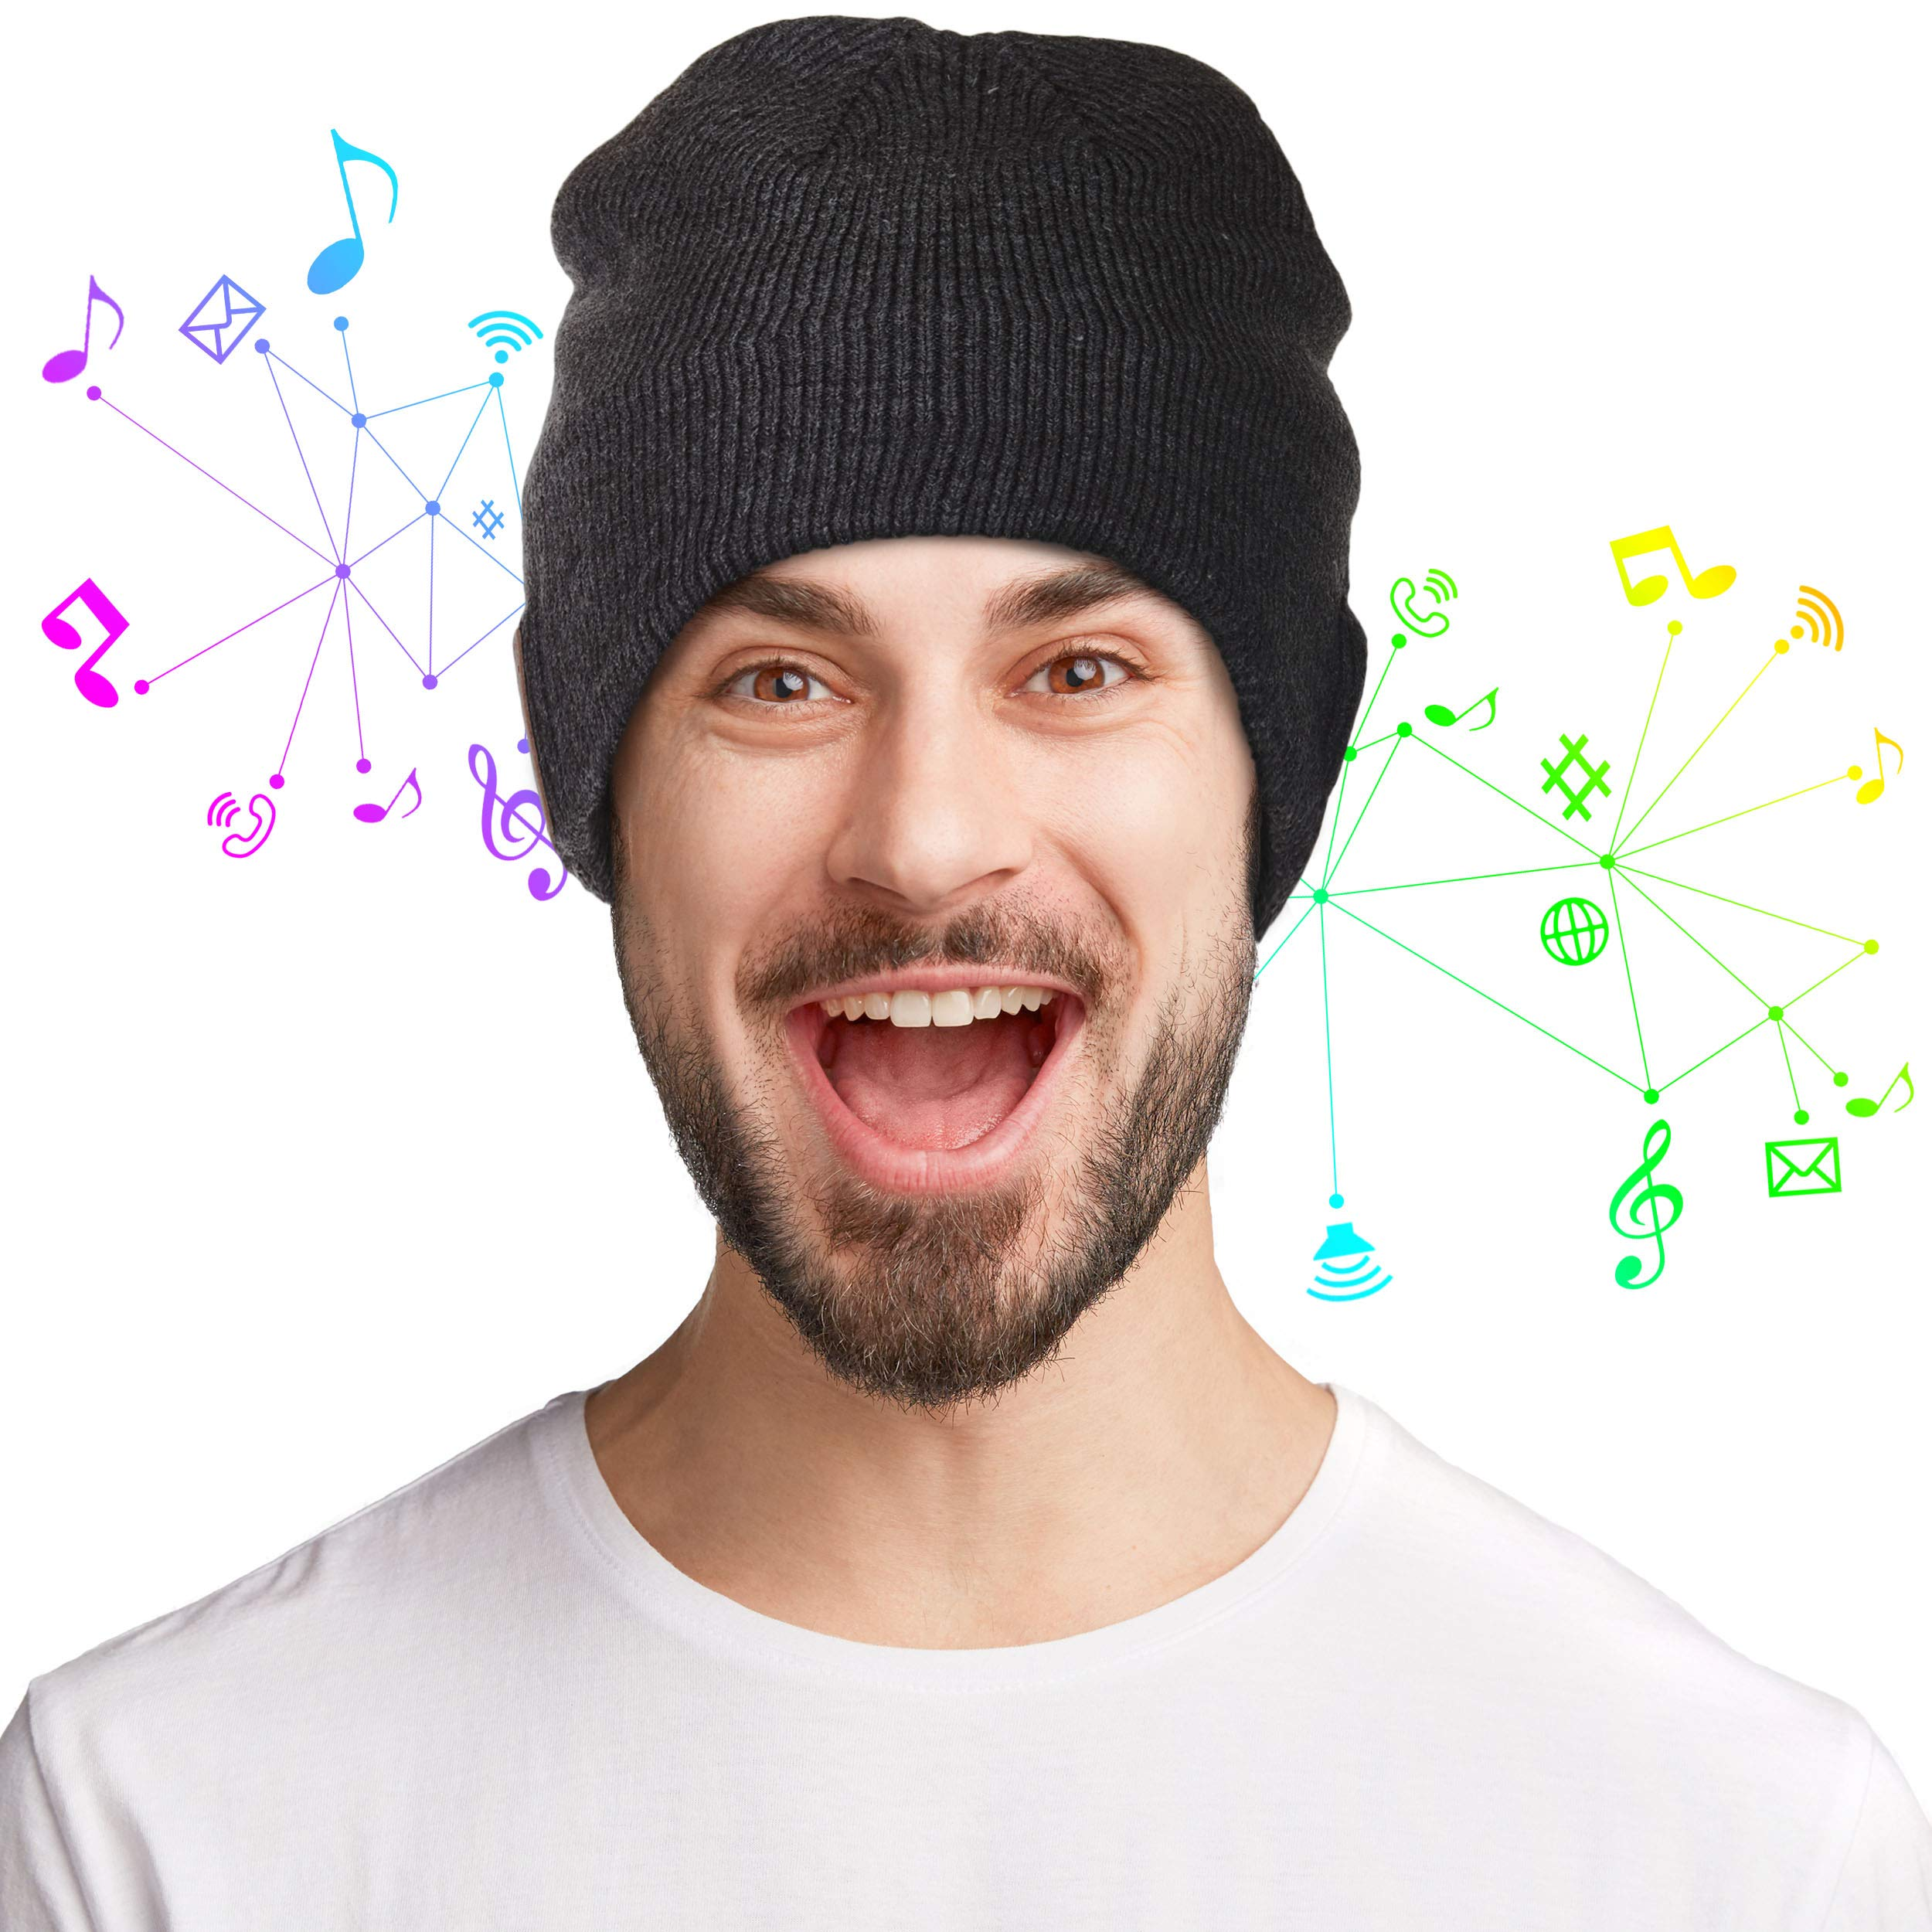 f5504e49b17 Accessory Innovations Bluetooth Wireless Knit Beanie with Built-in ...